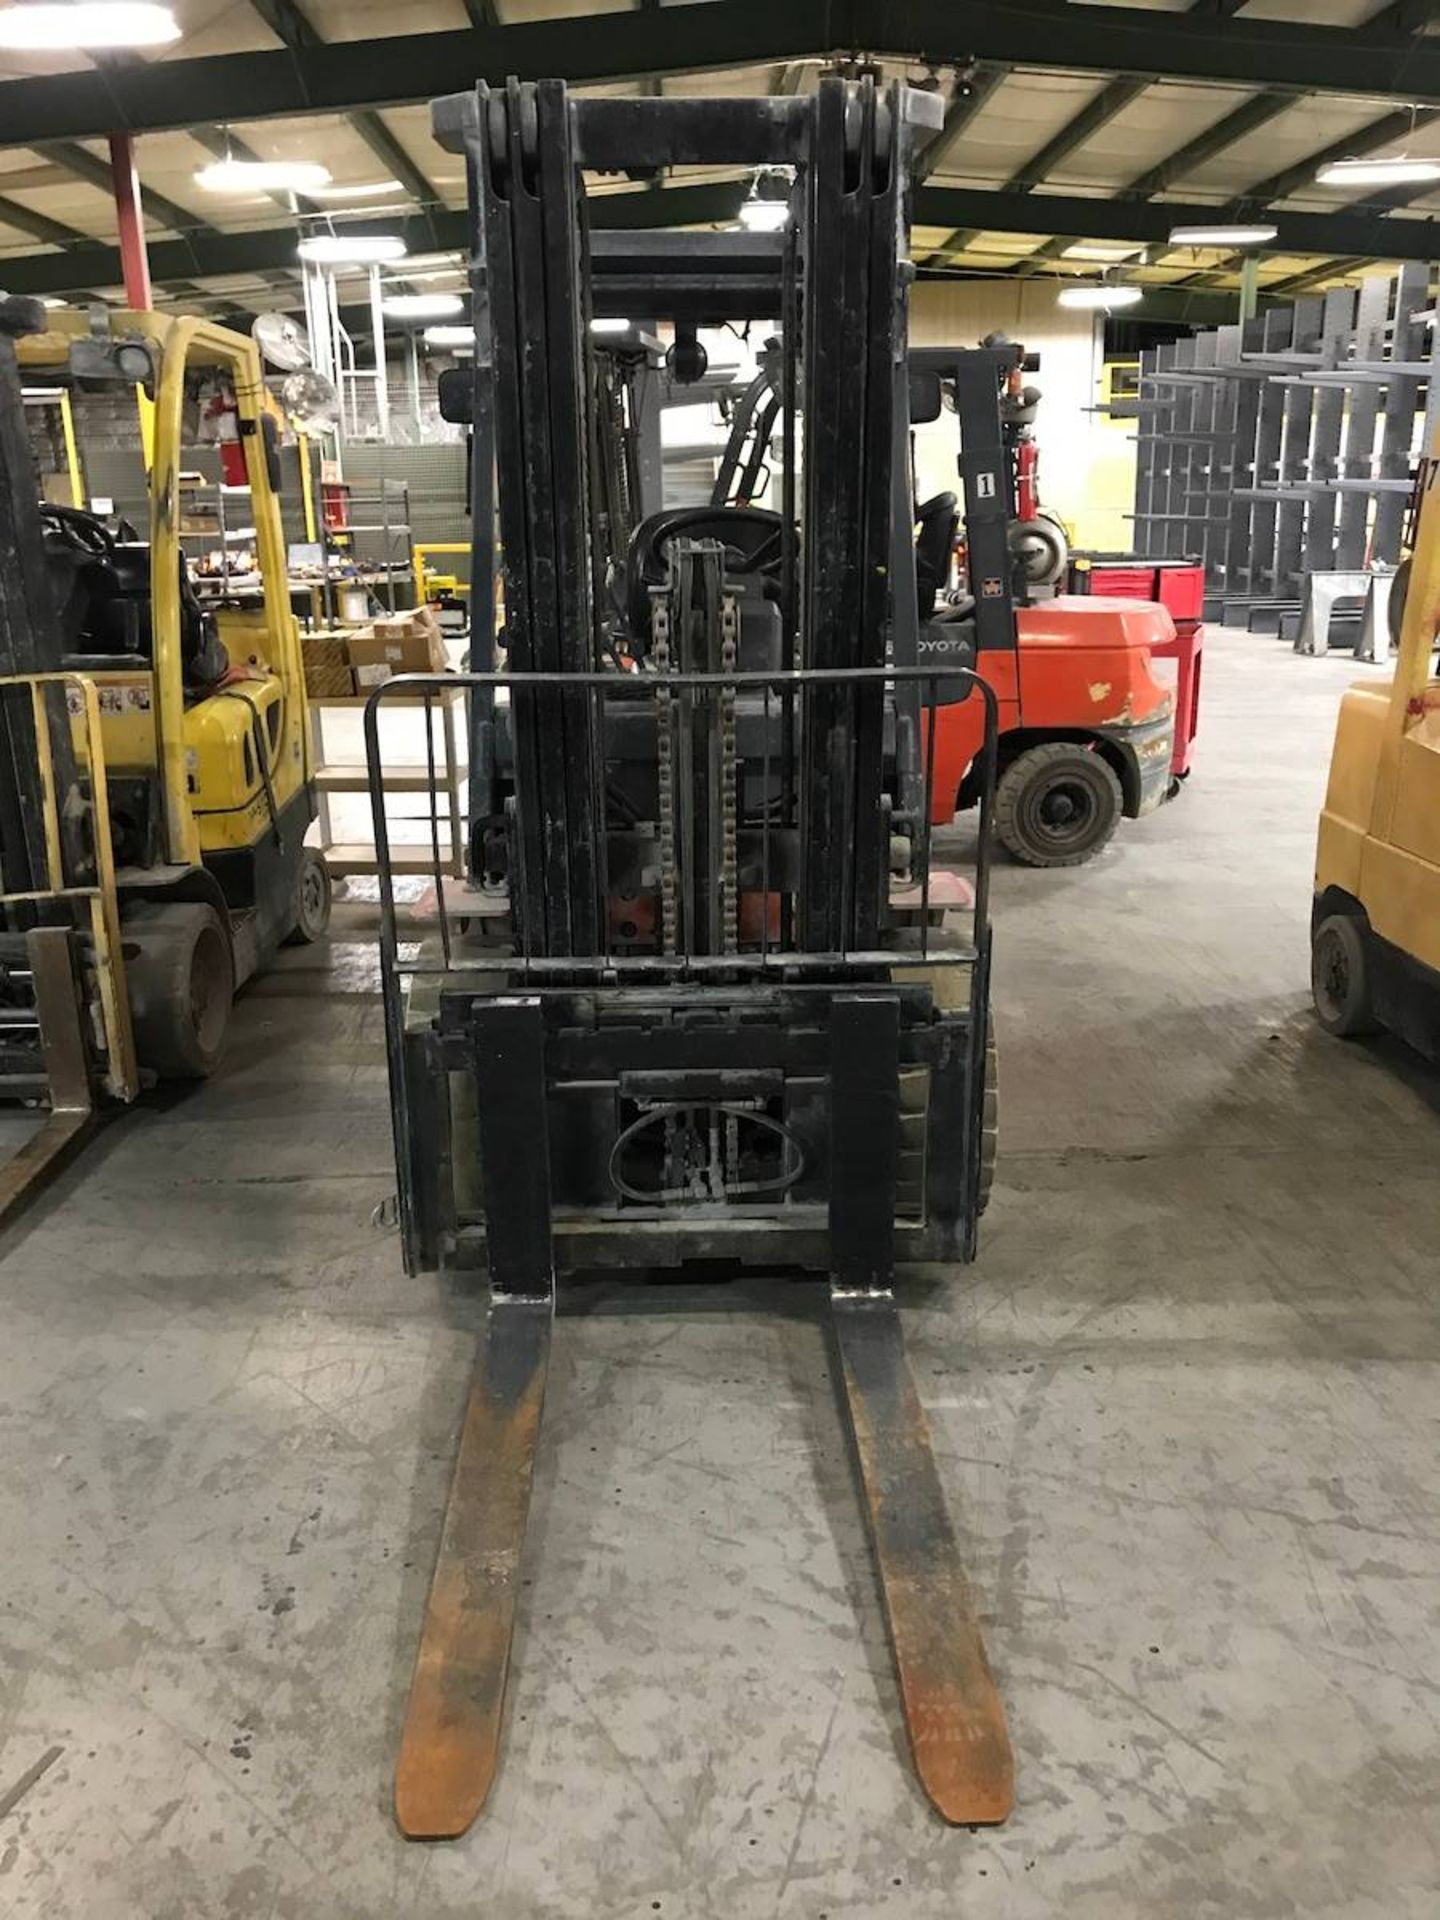 Toyota 7FGU30 Forklift Truck - Image 2 of 6